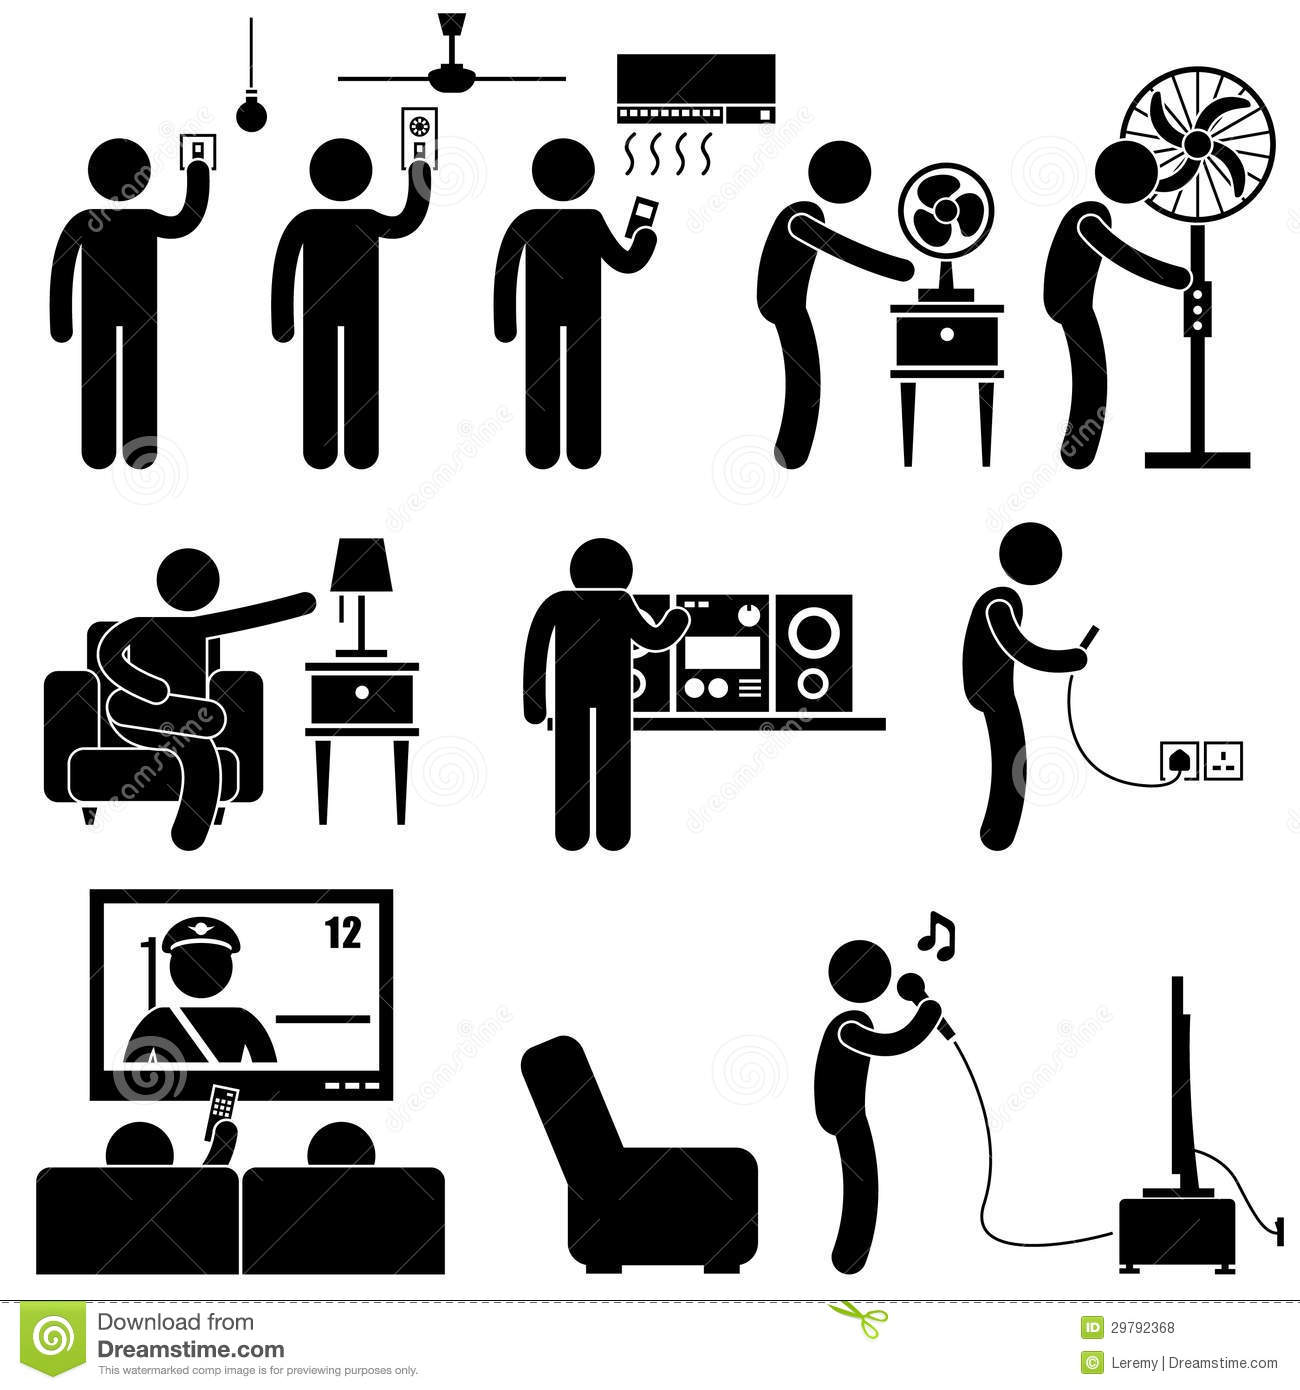 Man Using Home Appliances Equipment Pictogram Royalty Free